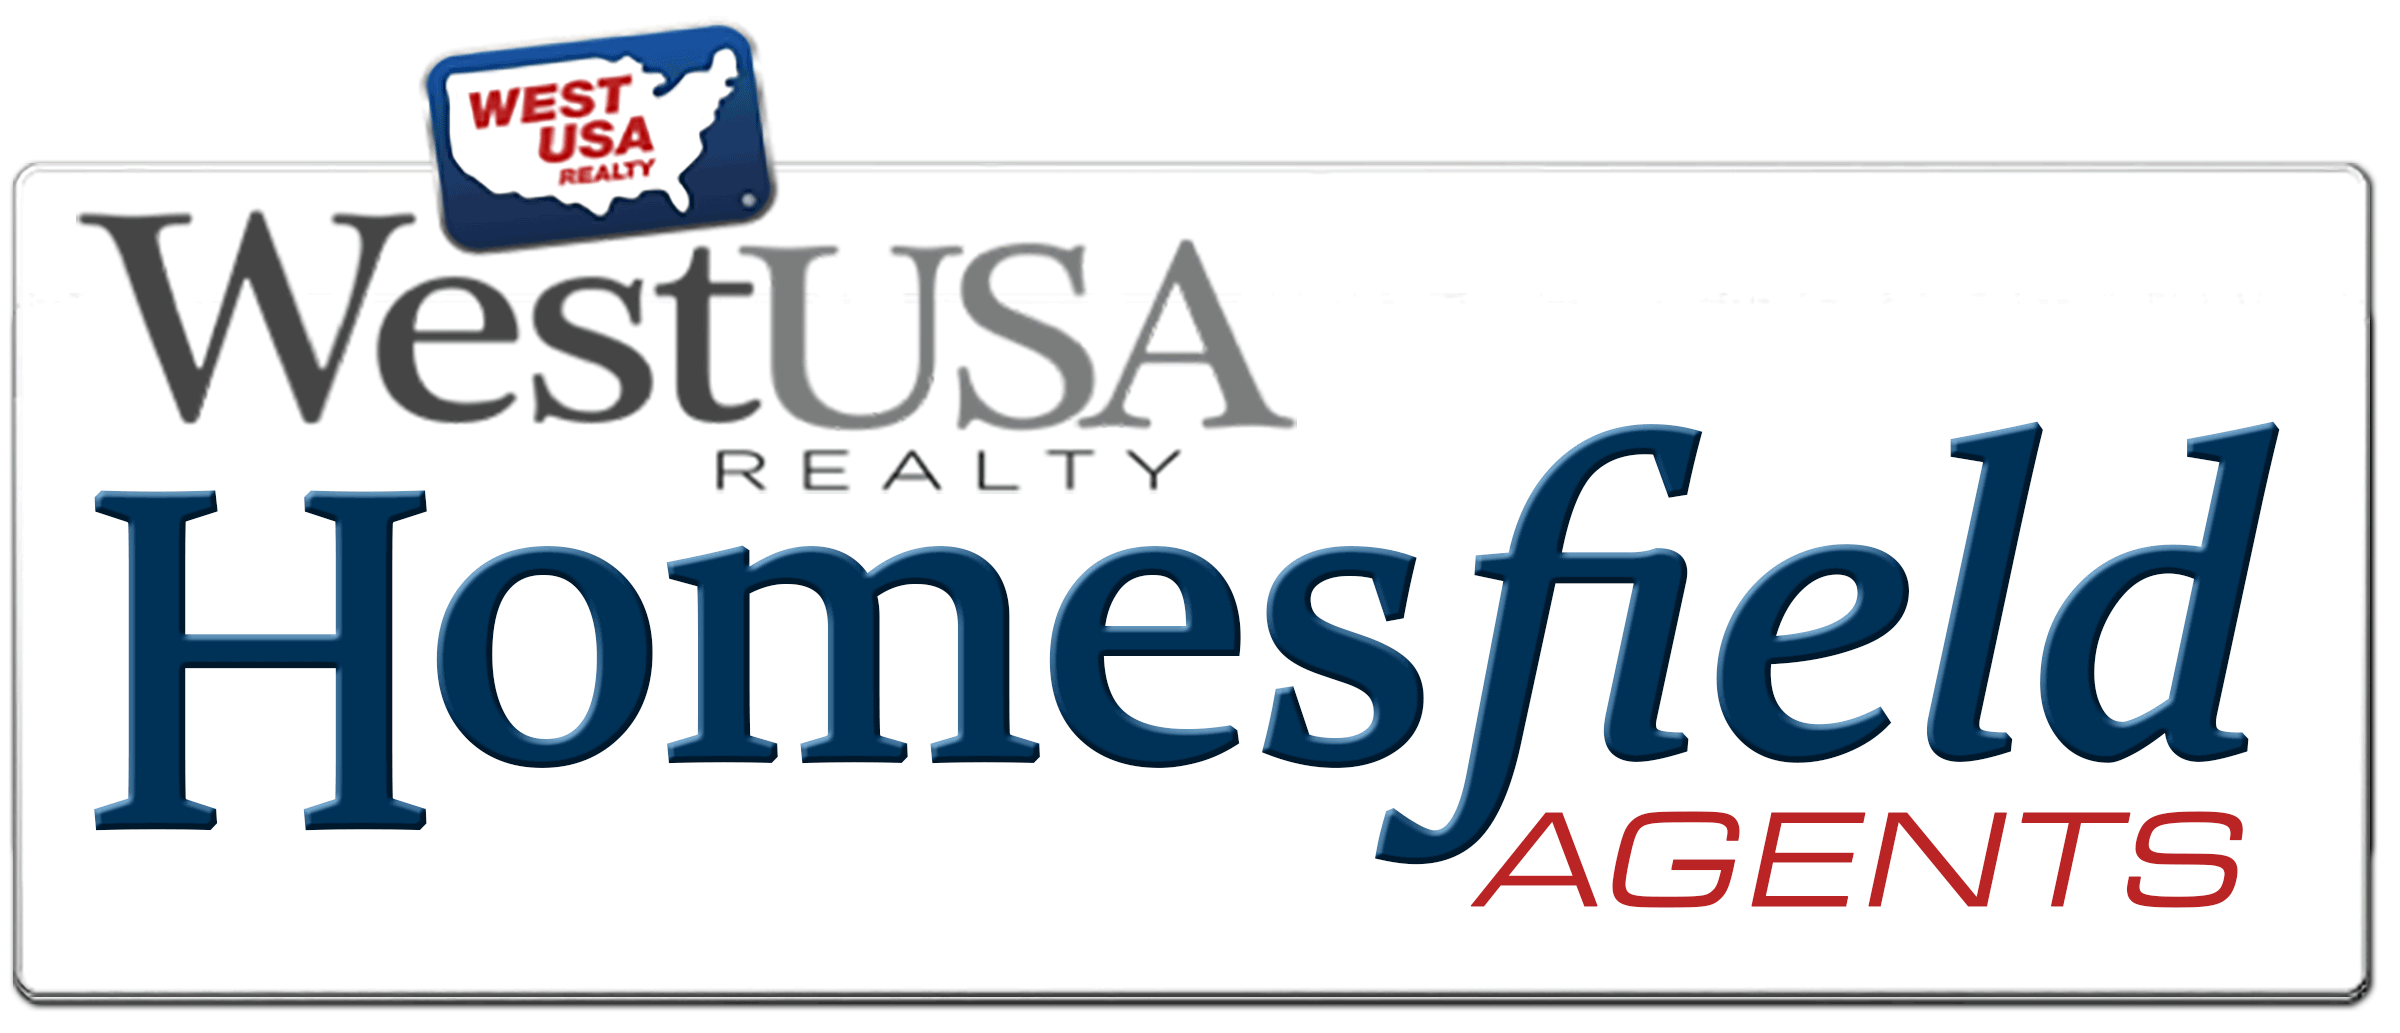 West USA Realty in Arizona